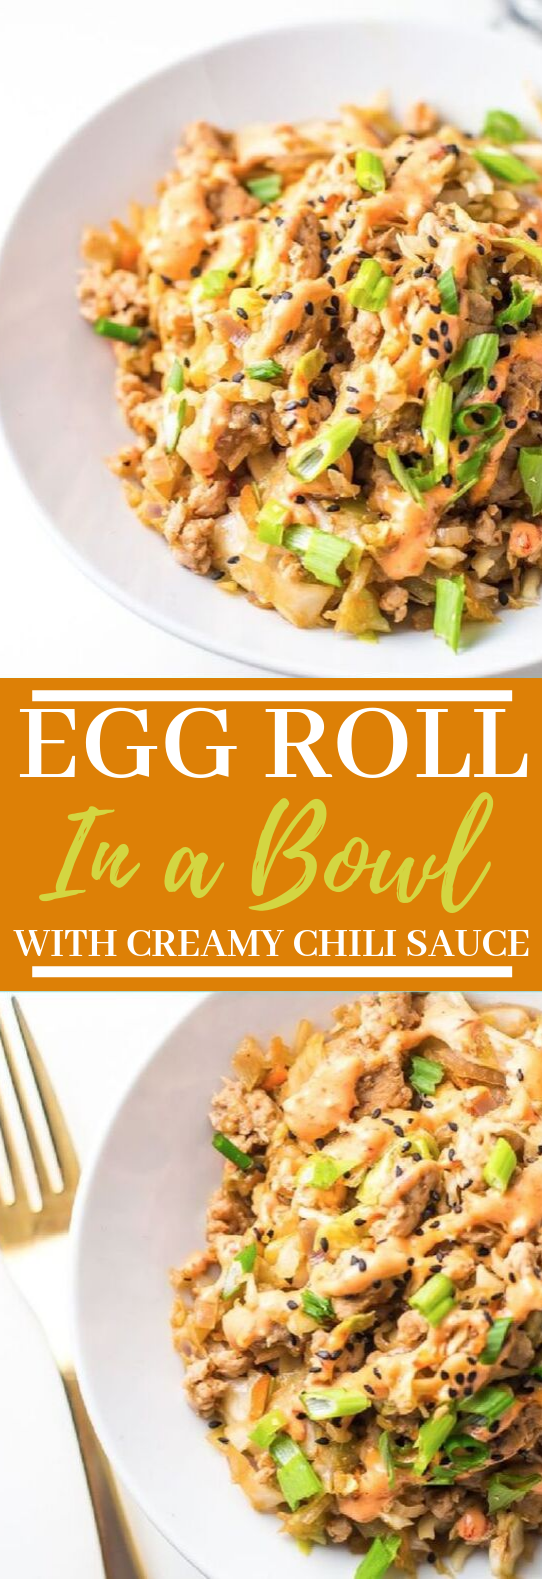 Egg Roll in a Bowl with Creamy Chili Sauce #whole30 #lowcarb